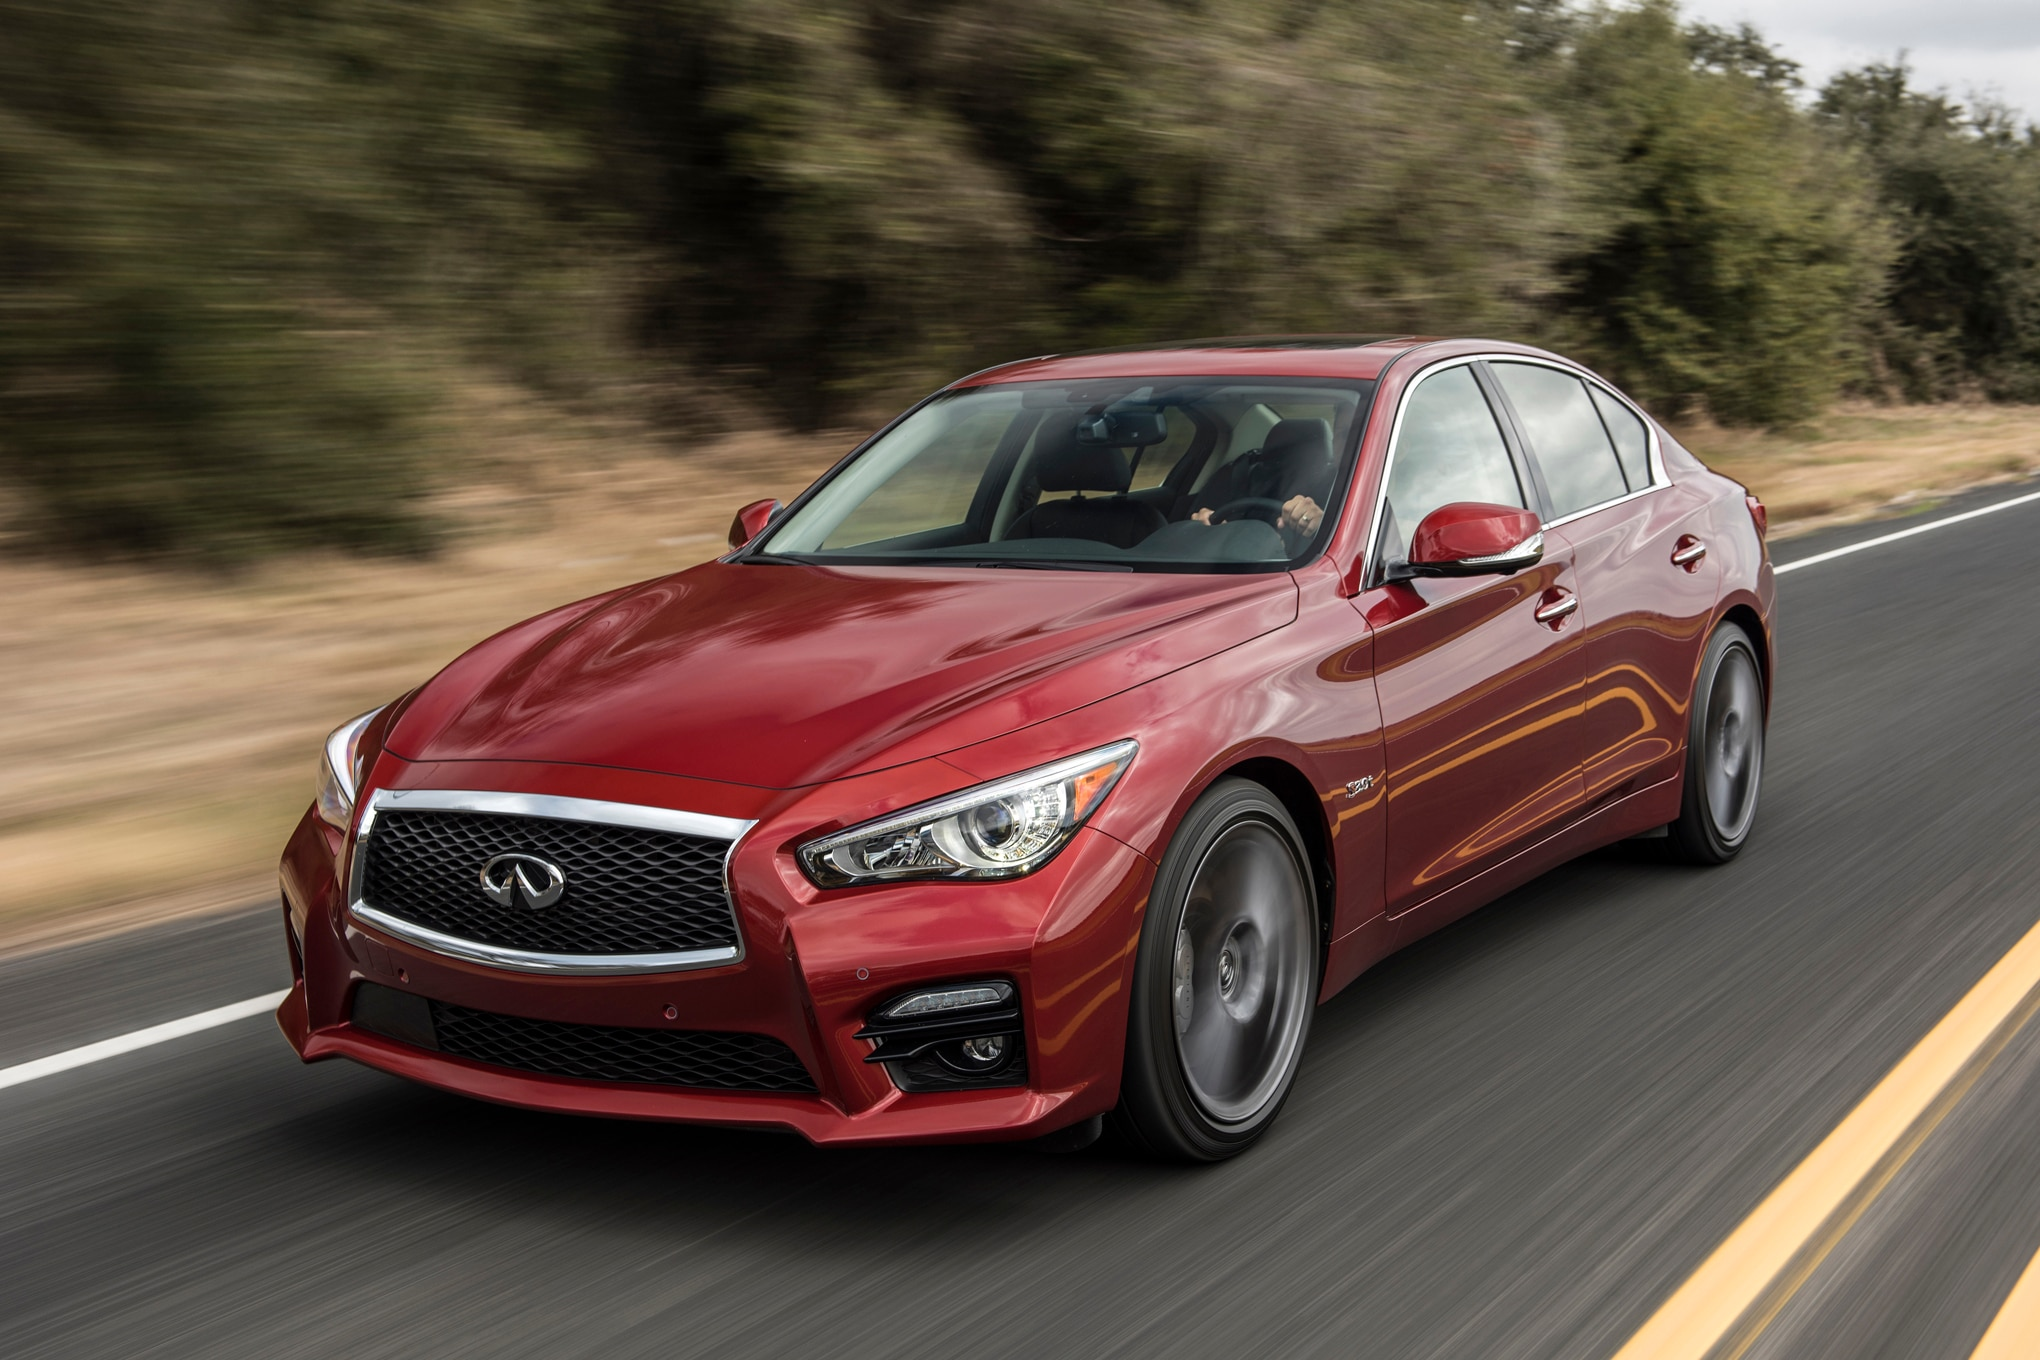 2016 infiniti q50 red sport priced to sell from 48 855 automobile magazine. Black Bedroom Furniture Sets. Home Design Ideas